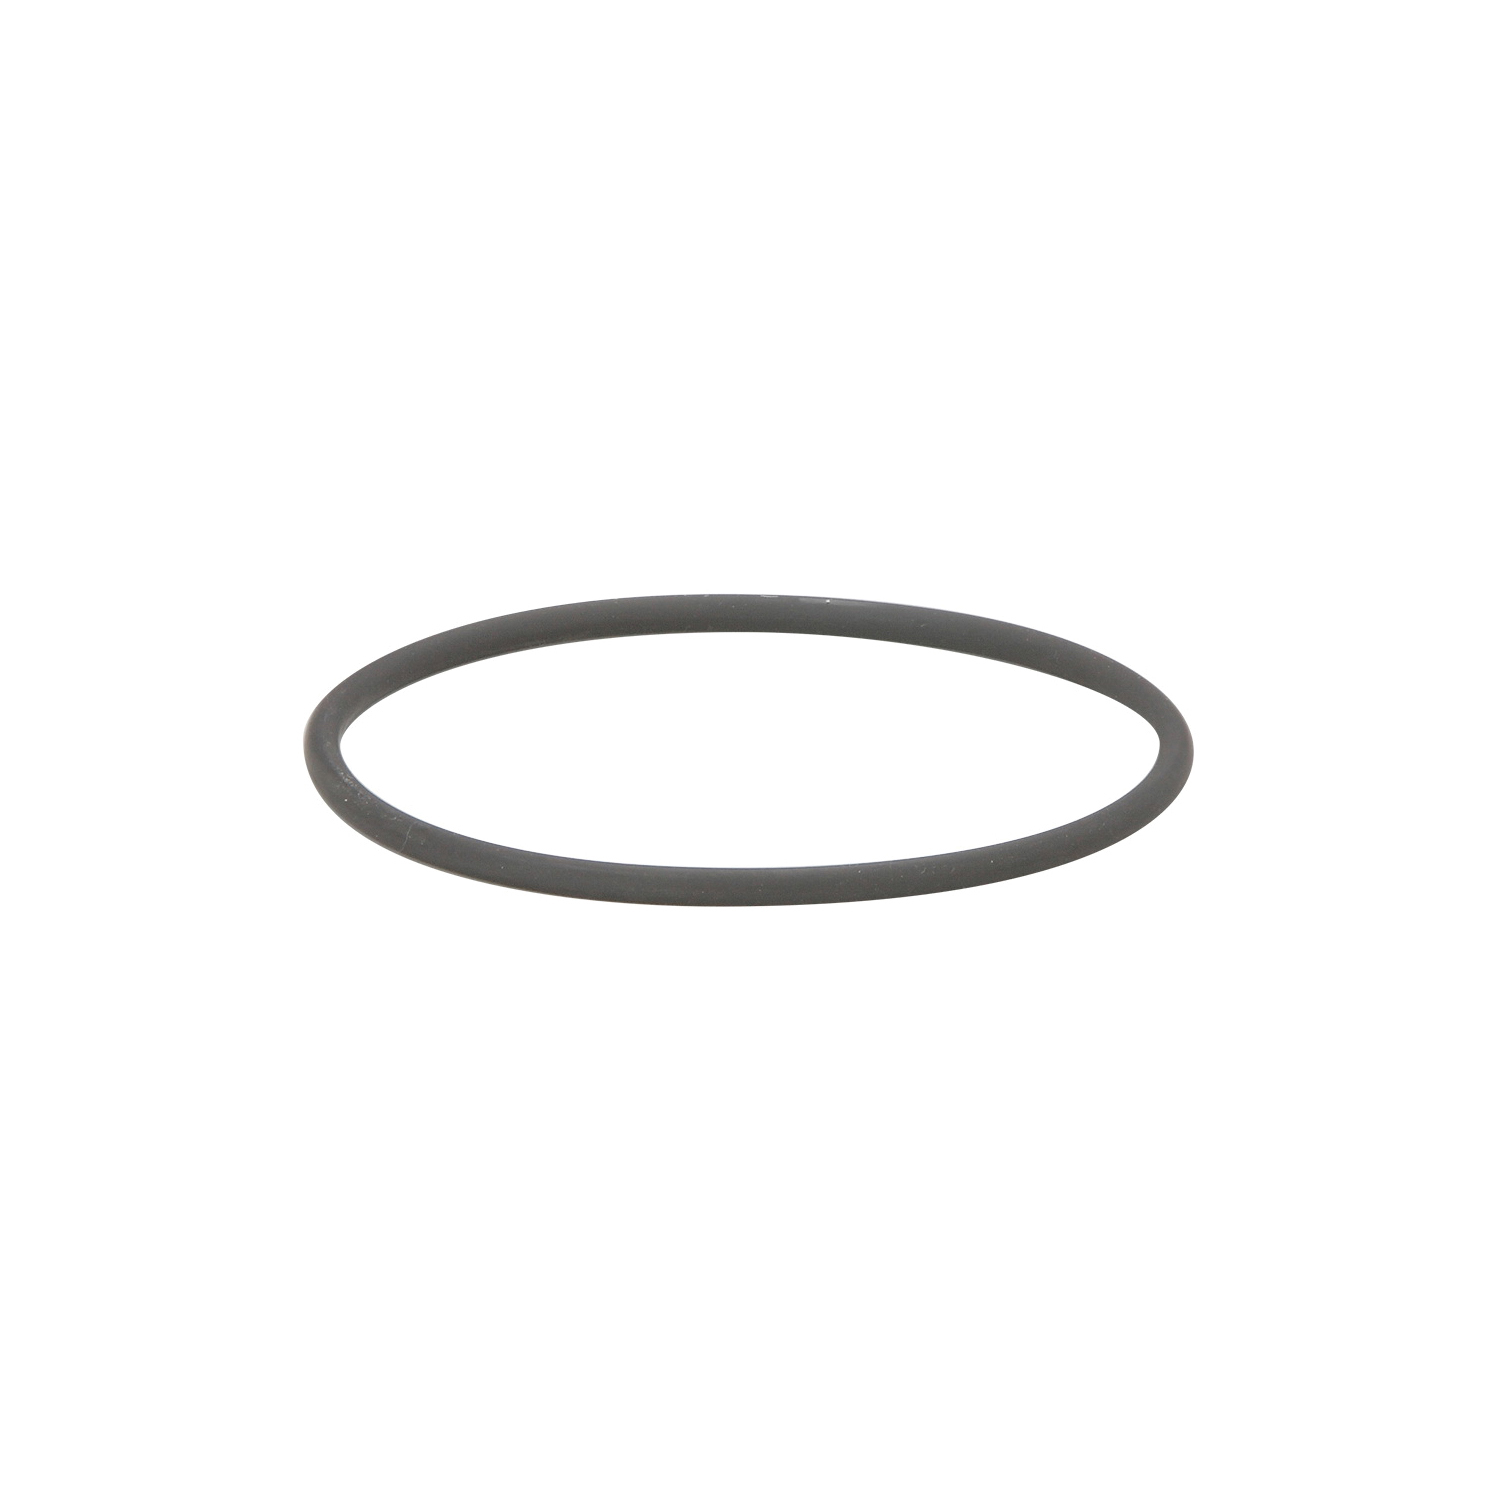 ProPress® 78247 Sealing Element, For Use With Viega ProPress CTS Fitting, 3/4 in, EPDM, Black, Import